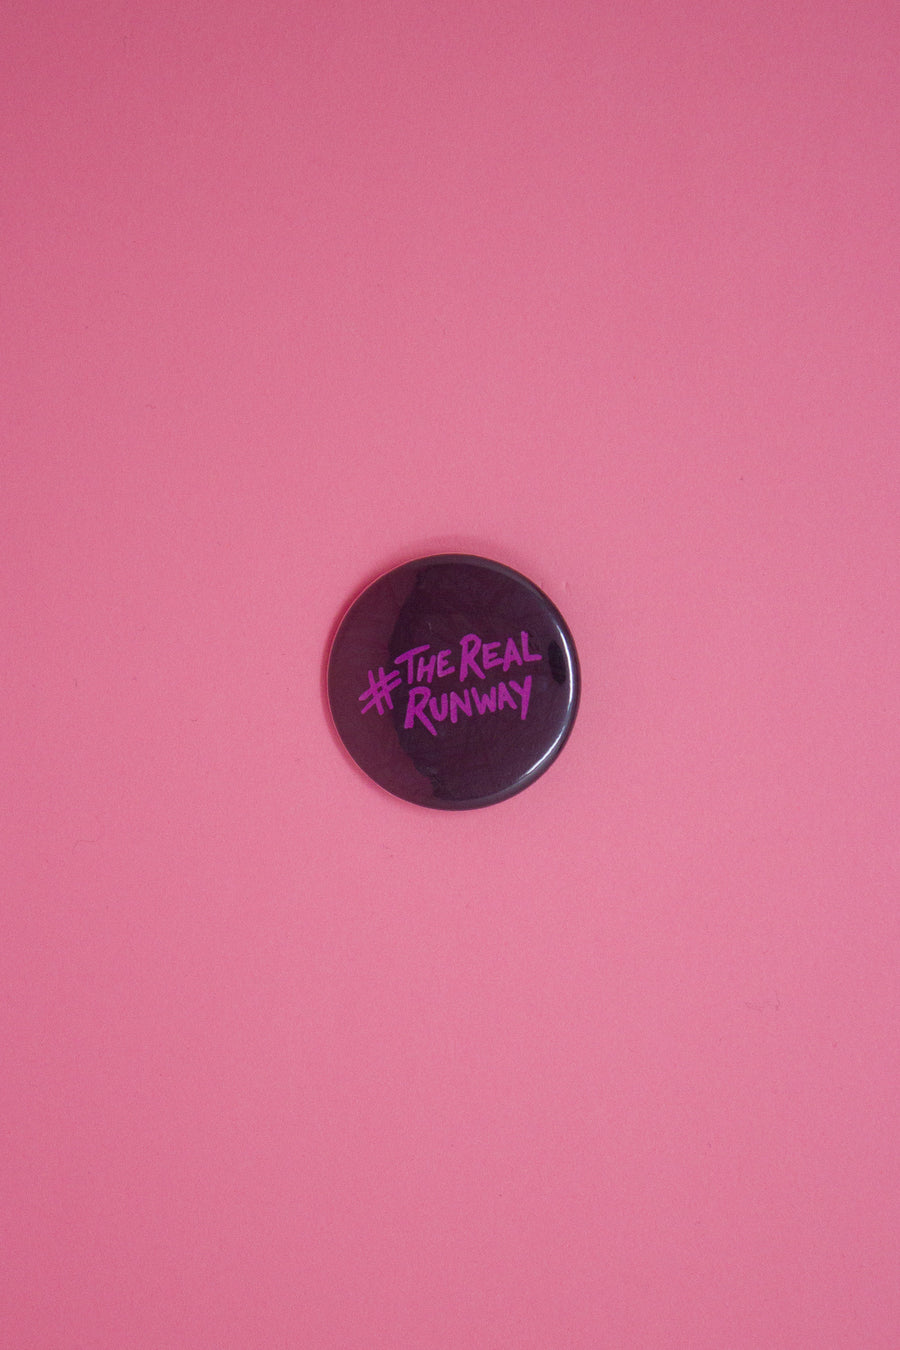 #therealrunway Button